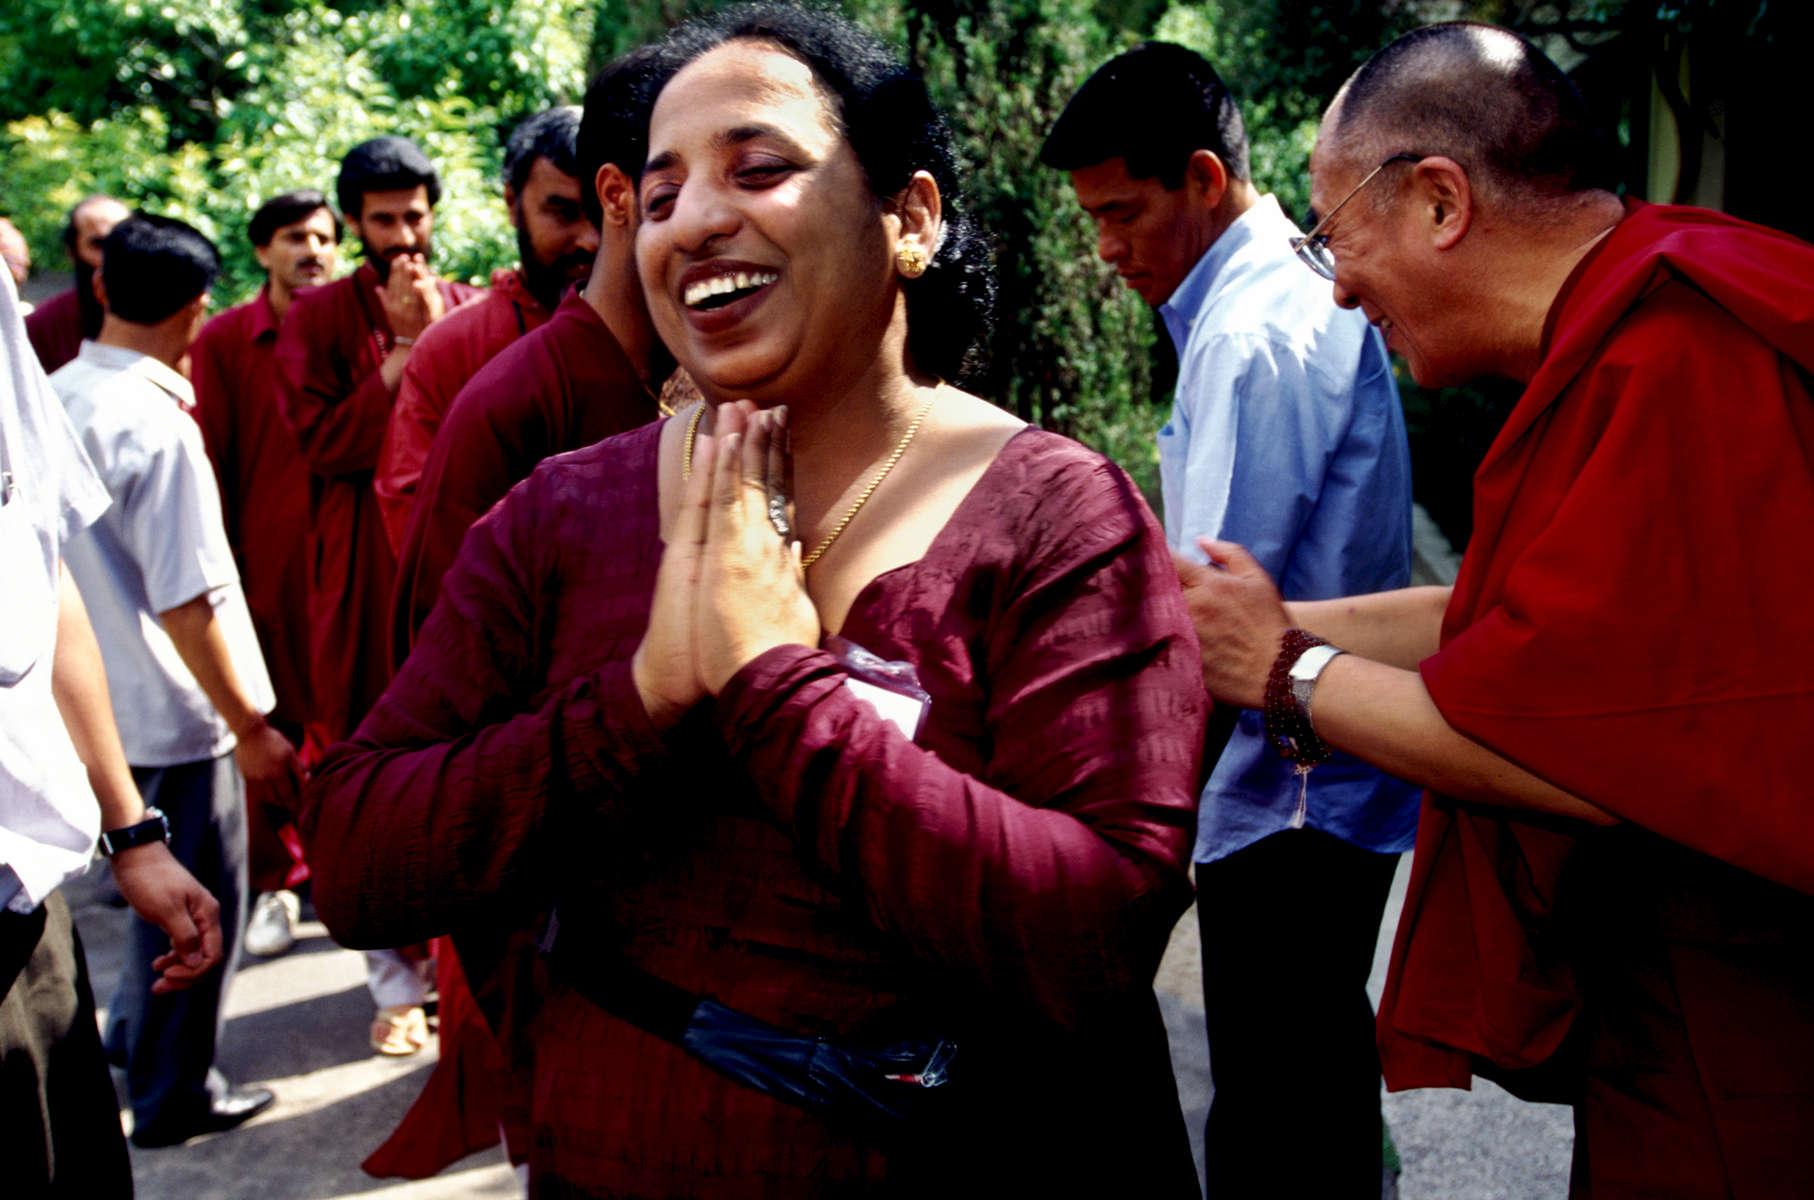 An overjoyed Indian Osho follower after she has been blessed by the Dalai Lama in Mecelod Ganj, India 1998